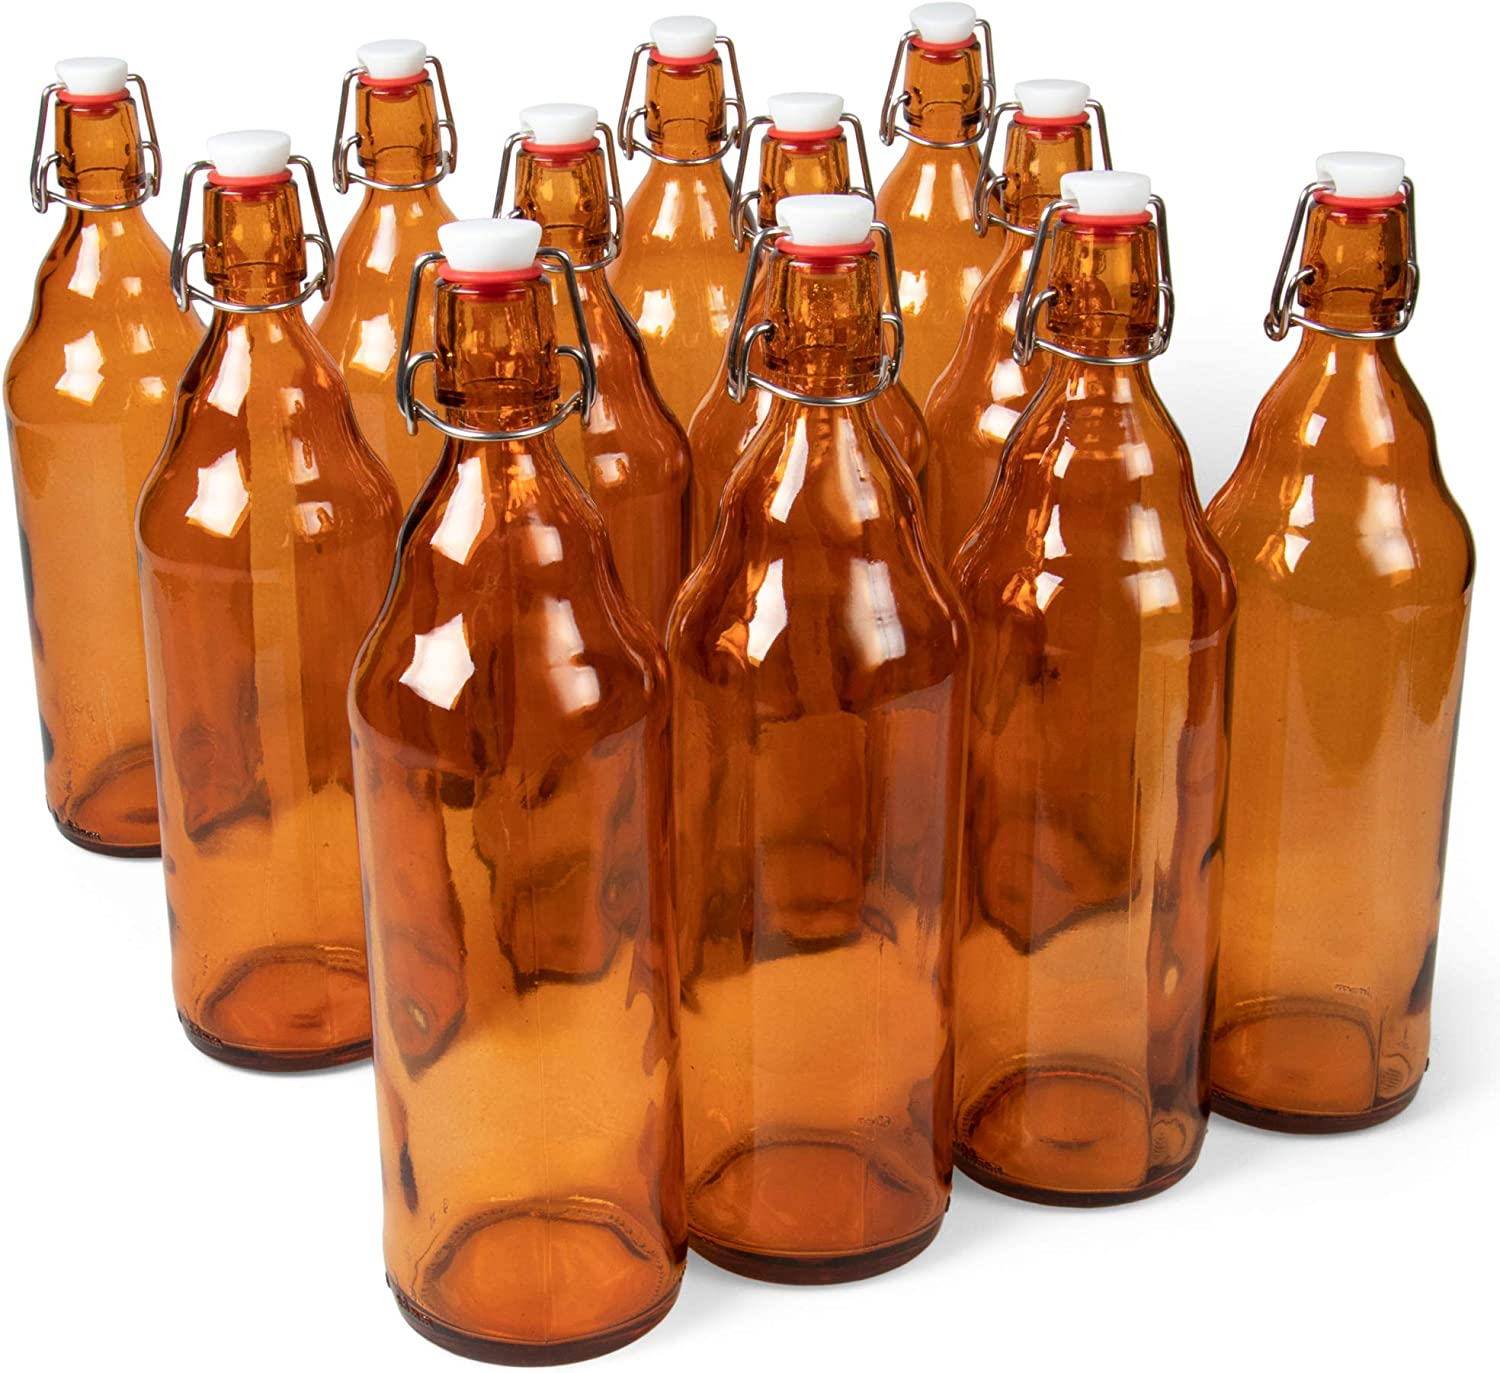 33 oz. Amber Glass Grolsch Beer Bottles, Quart Size – Airtight Seal with Swing Top/Flip Top - Supplies for Home Brewing & Fermenting of Alcohol, Kombucha Tea, Wine, Homemade Soda (12-pack)